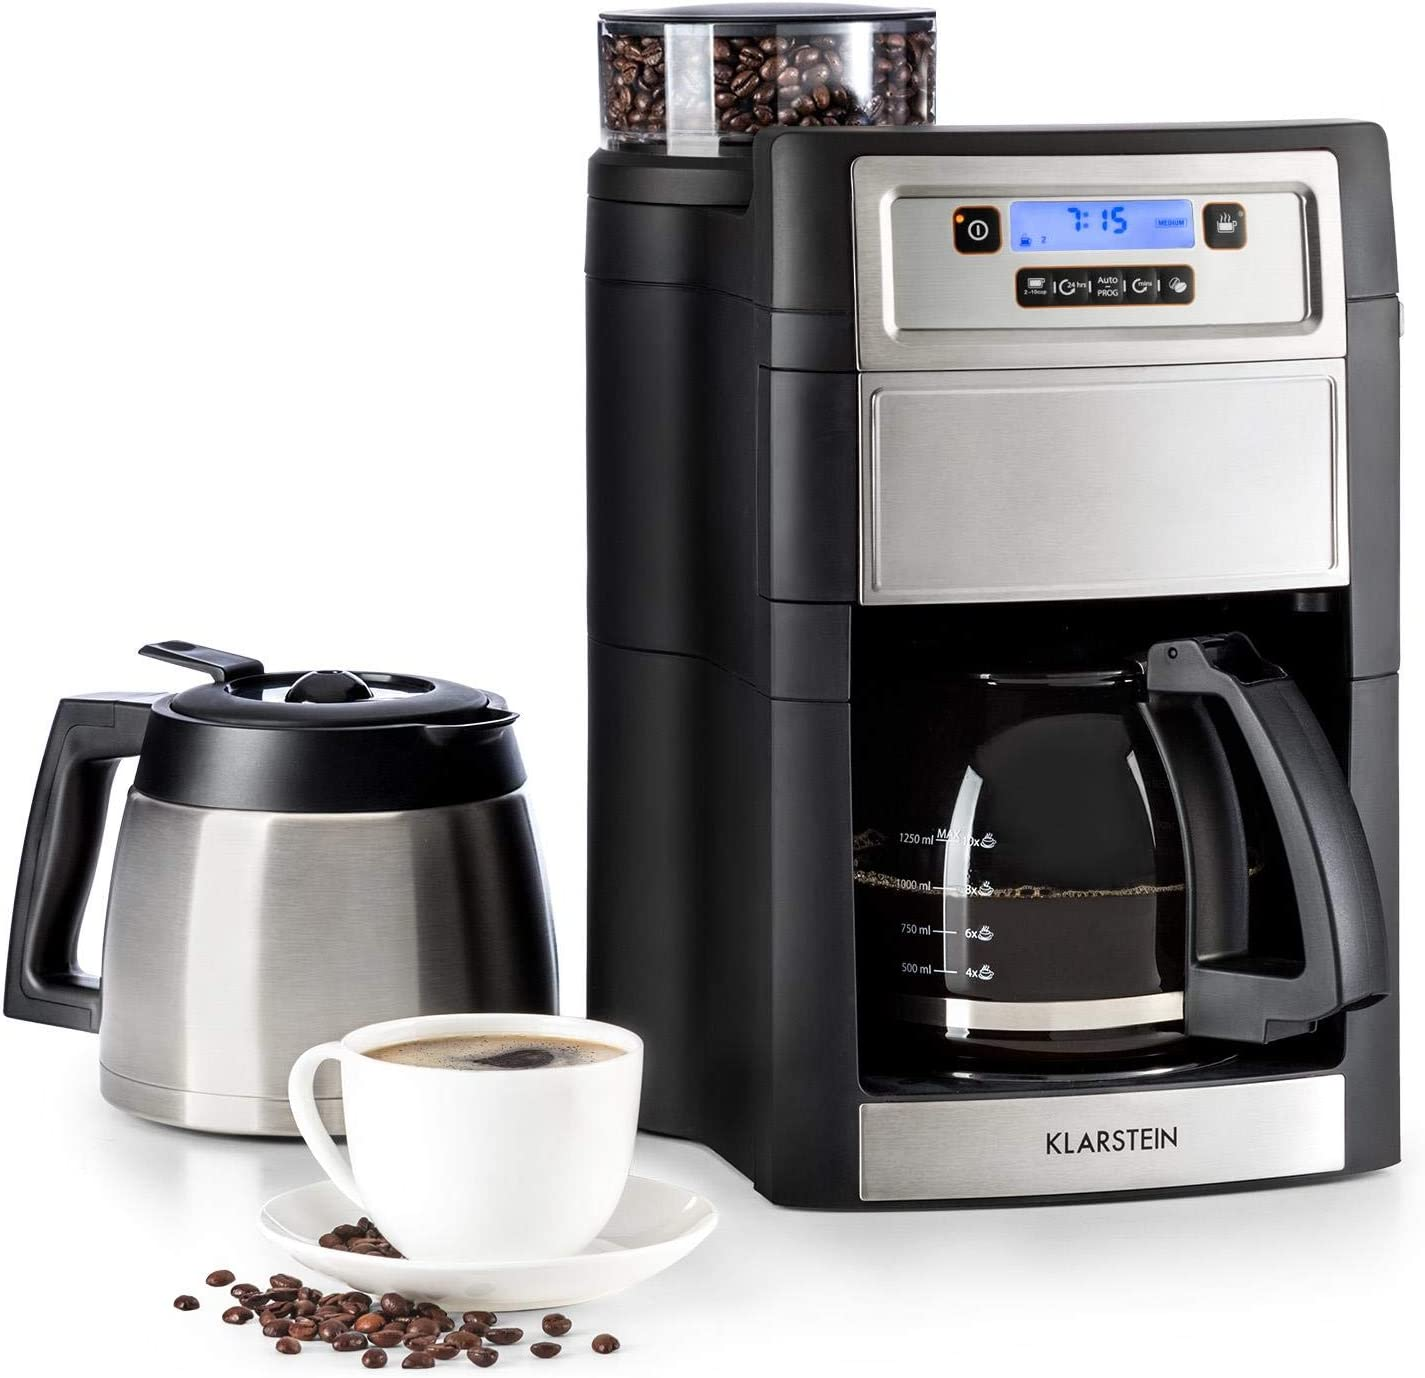 Klarstein Aromatica II Duo Coffee Machine w/Cone Gear Grinder - Filter Coffee Machine, 1000W, 1.25L Jug, 1.25L Thermos, Timer, Permanent Activated Carbon Filter, Silver